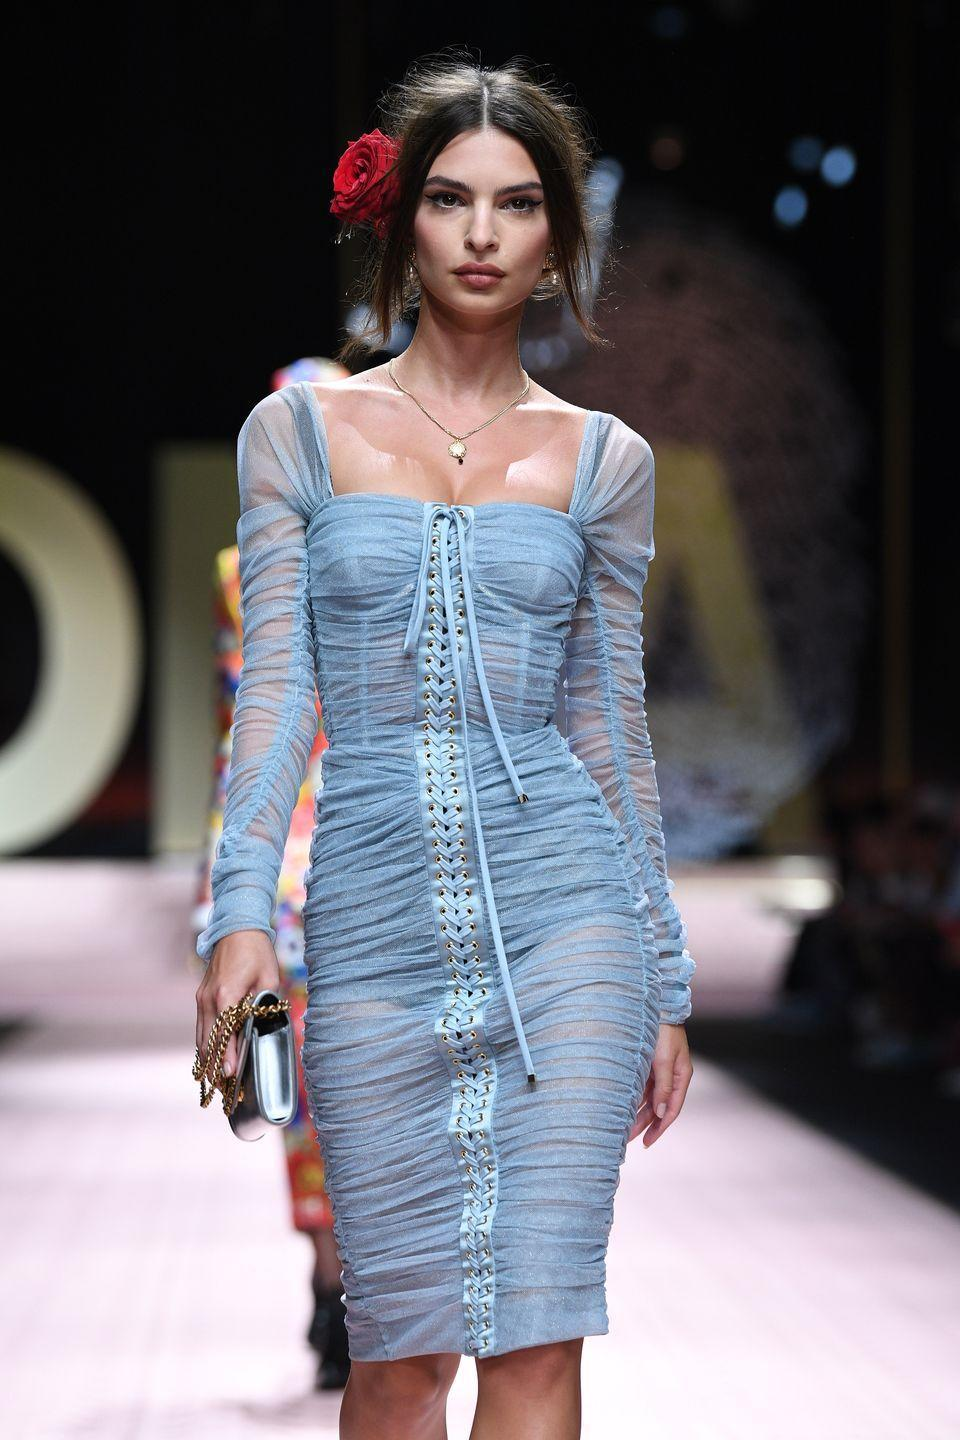 "<p>EmRata's dream of acting and modeling came true when she signed with <a href=""https://www.fordmodels.com/"" rel=""nofollow noopener"" target=""_blank"" data-ylk=""slk:Ford Models"" class=""link rapid-noclick-resp"">Ford Models</a> at age 14. Between small modeling jobs, she dipped her toes into the acting world and once appeared on Nickelodeon show <em>iCarly, </em>according to <a href=""https://www.nytimes.com/2013/10/24/fashion/for-emily-ratajkowski-robin-thickes-blurred-lines-video-brings-a-career-path-into-focus.html"" rel=""nofollow noopener"" target=""_blank"" data-ylk=""slk:The New York Times"" class=""link rapid-noclick-resp""><em>The New York Times</em></a>. She dropped out of college after one year to pursue her modeling career and got her big break in 2011 when she appeared naked in Robin Thicke's music video for ""Blurred Lines.""</p><p>Today, Ratajkowski has appeared in hundreds of magazines and even landed key roles in movies such as <em>Gone Girl, </em><em>Entourage, </em>and <em>I Feel Pretty. </em></p>"